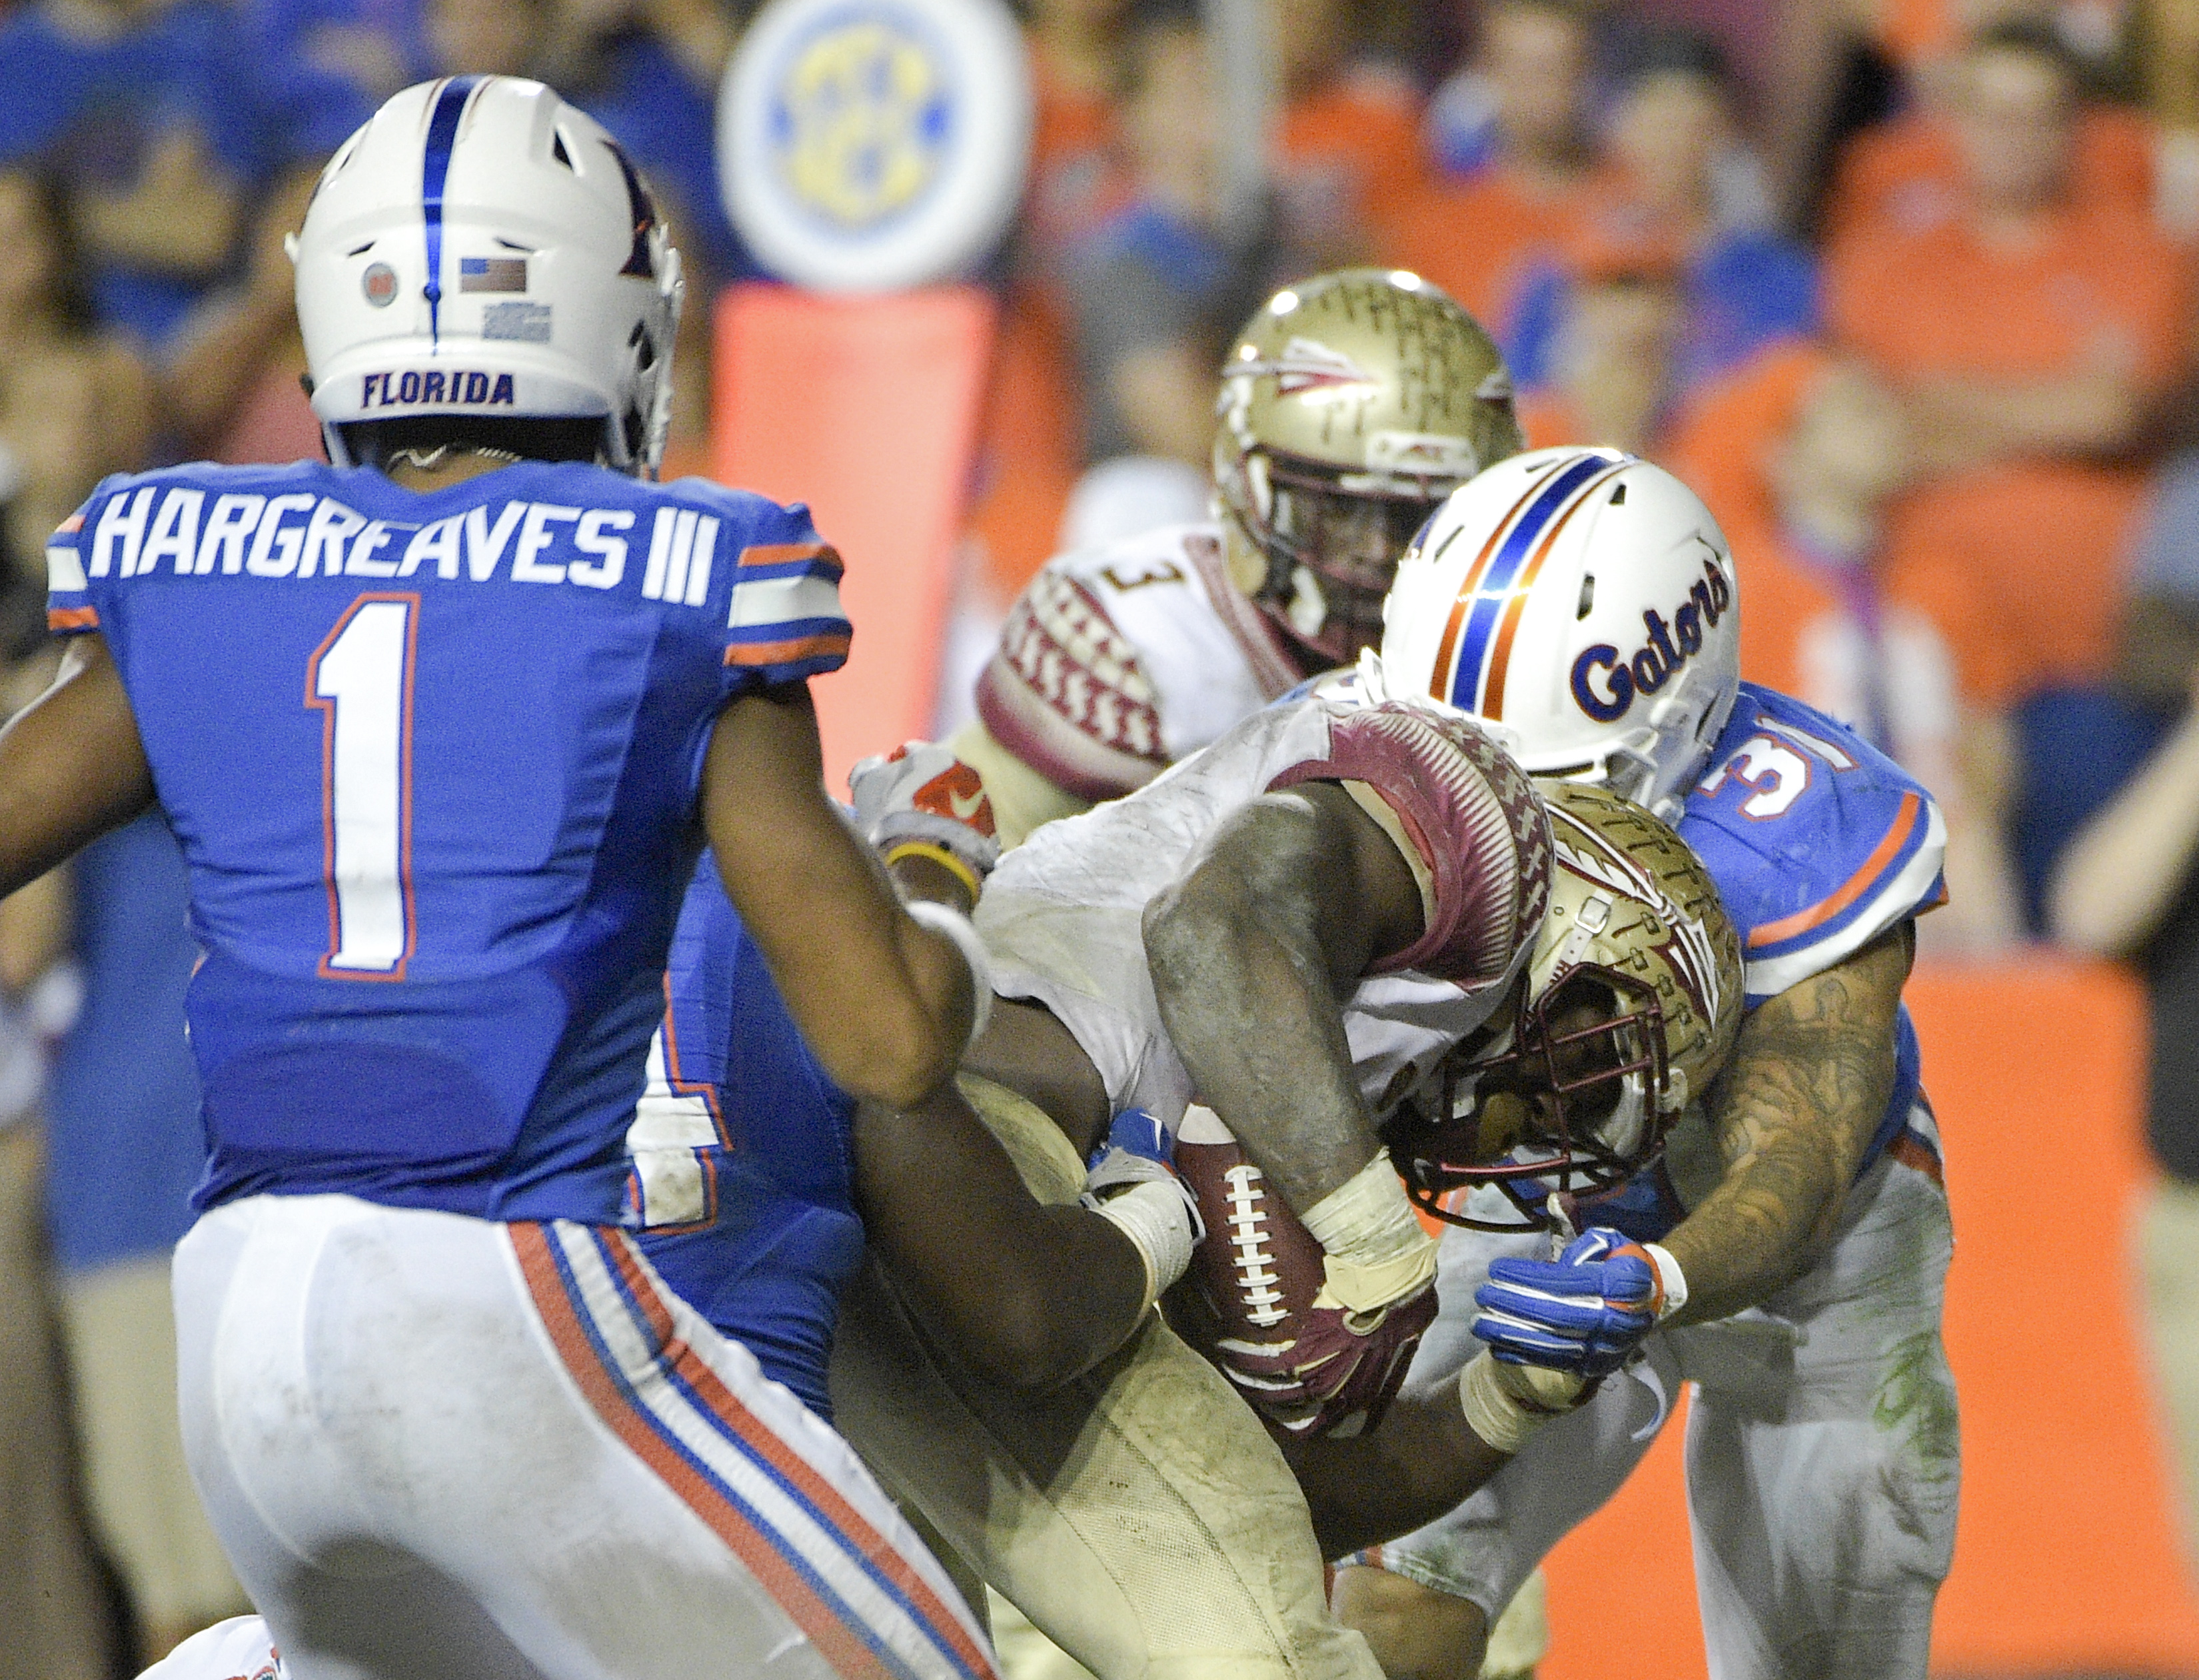 Florida State running back Dalvin Cook, center pushes past Florida defensive back Vernon Hargreaves III (1) and defensive back Jalen Tabor (31) for a touchdown during the second half of an NCAA college football game, Saturday, Nov. 28, 2015, in Gainesvill